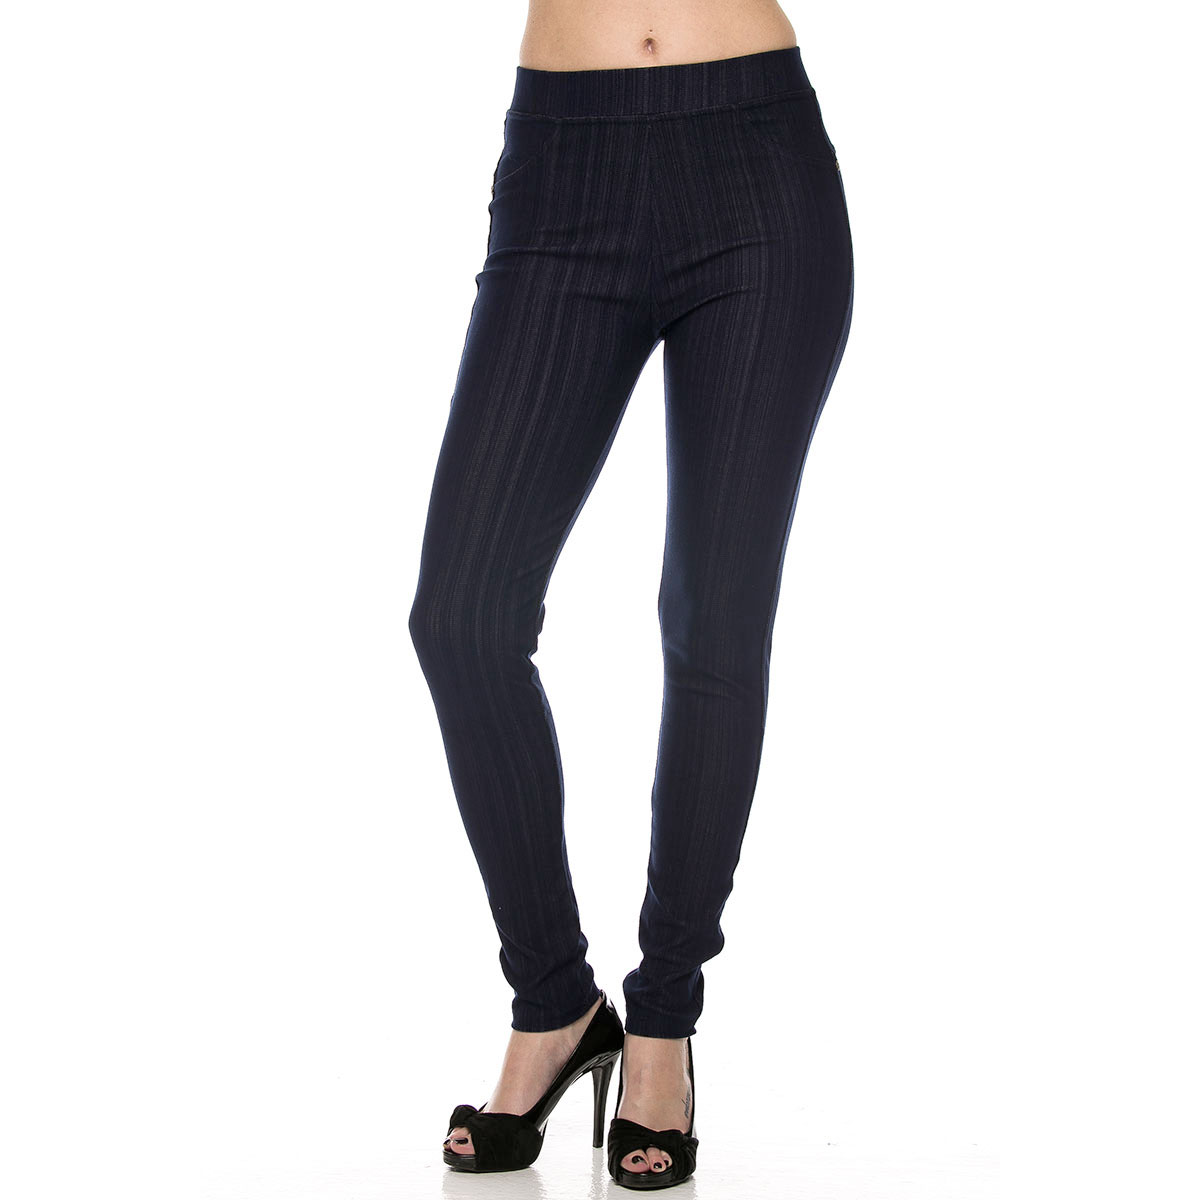 Denim Leggings - Ankle Length w/ Back Pockets J04